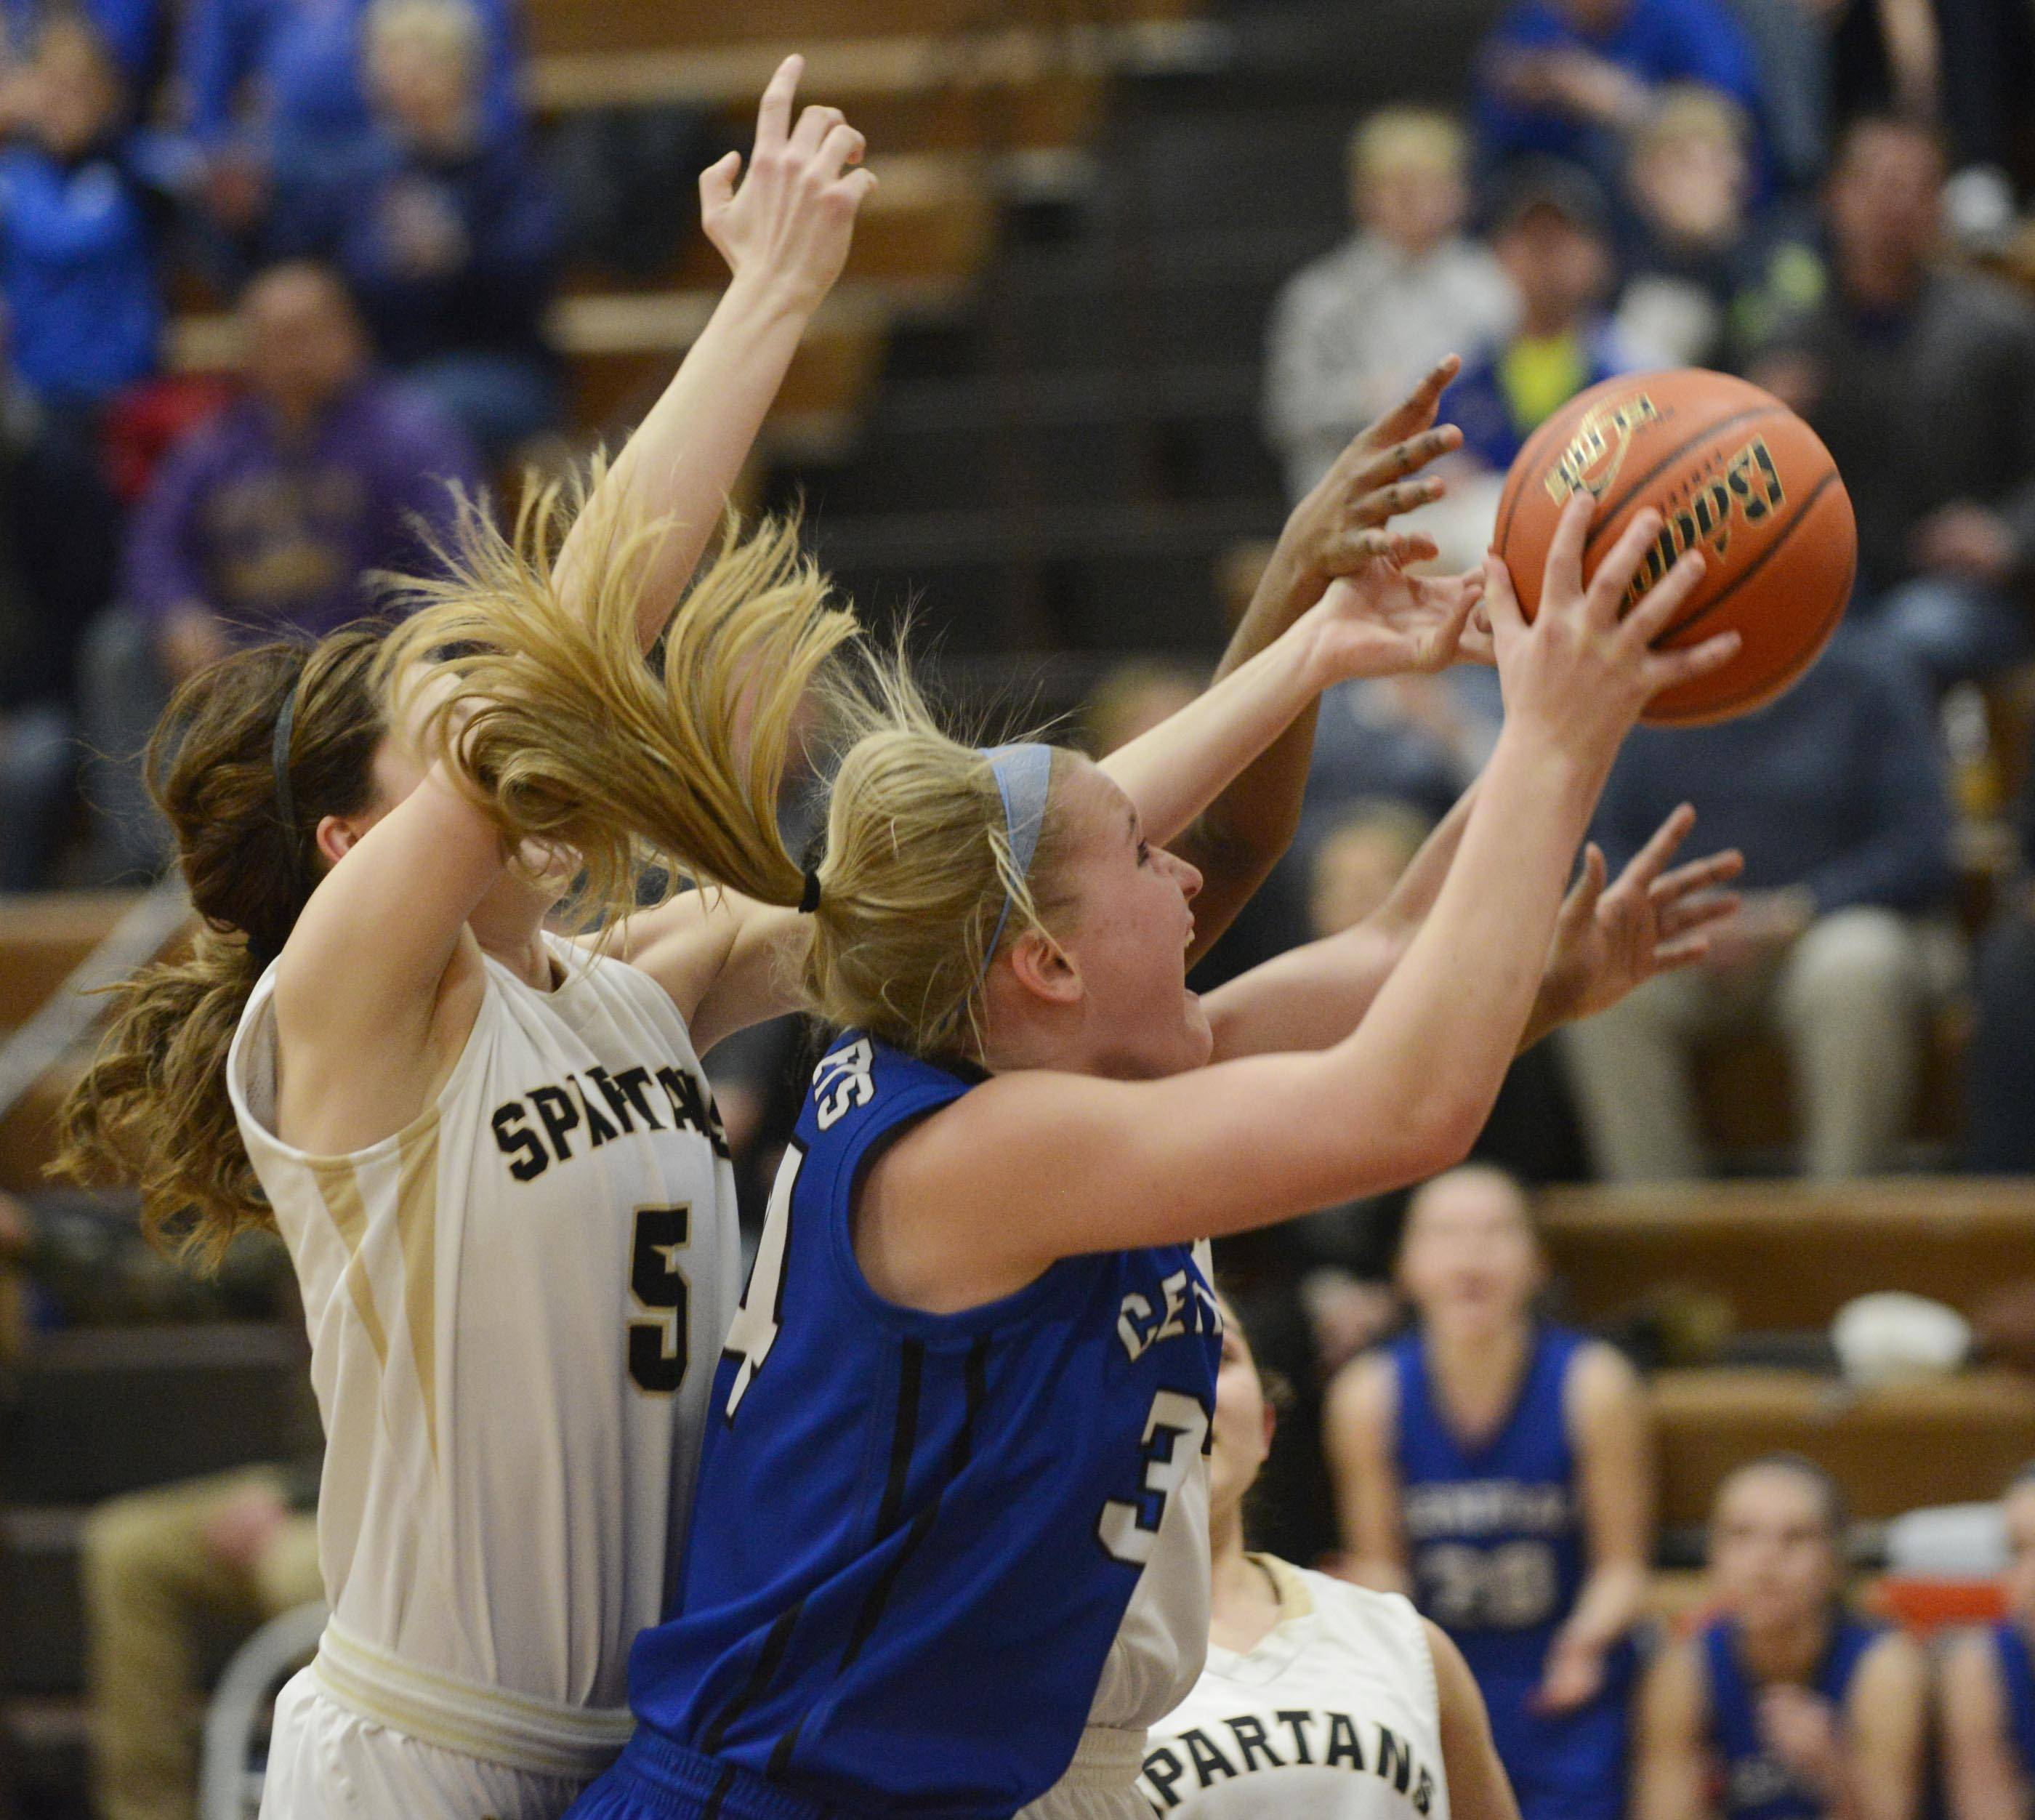 Burlington Central's Samantha Pryor grabs a rebound in a host of Sycamore players Monday in the Class 3A Belvidere sectional.